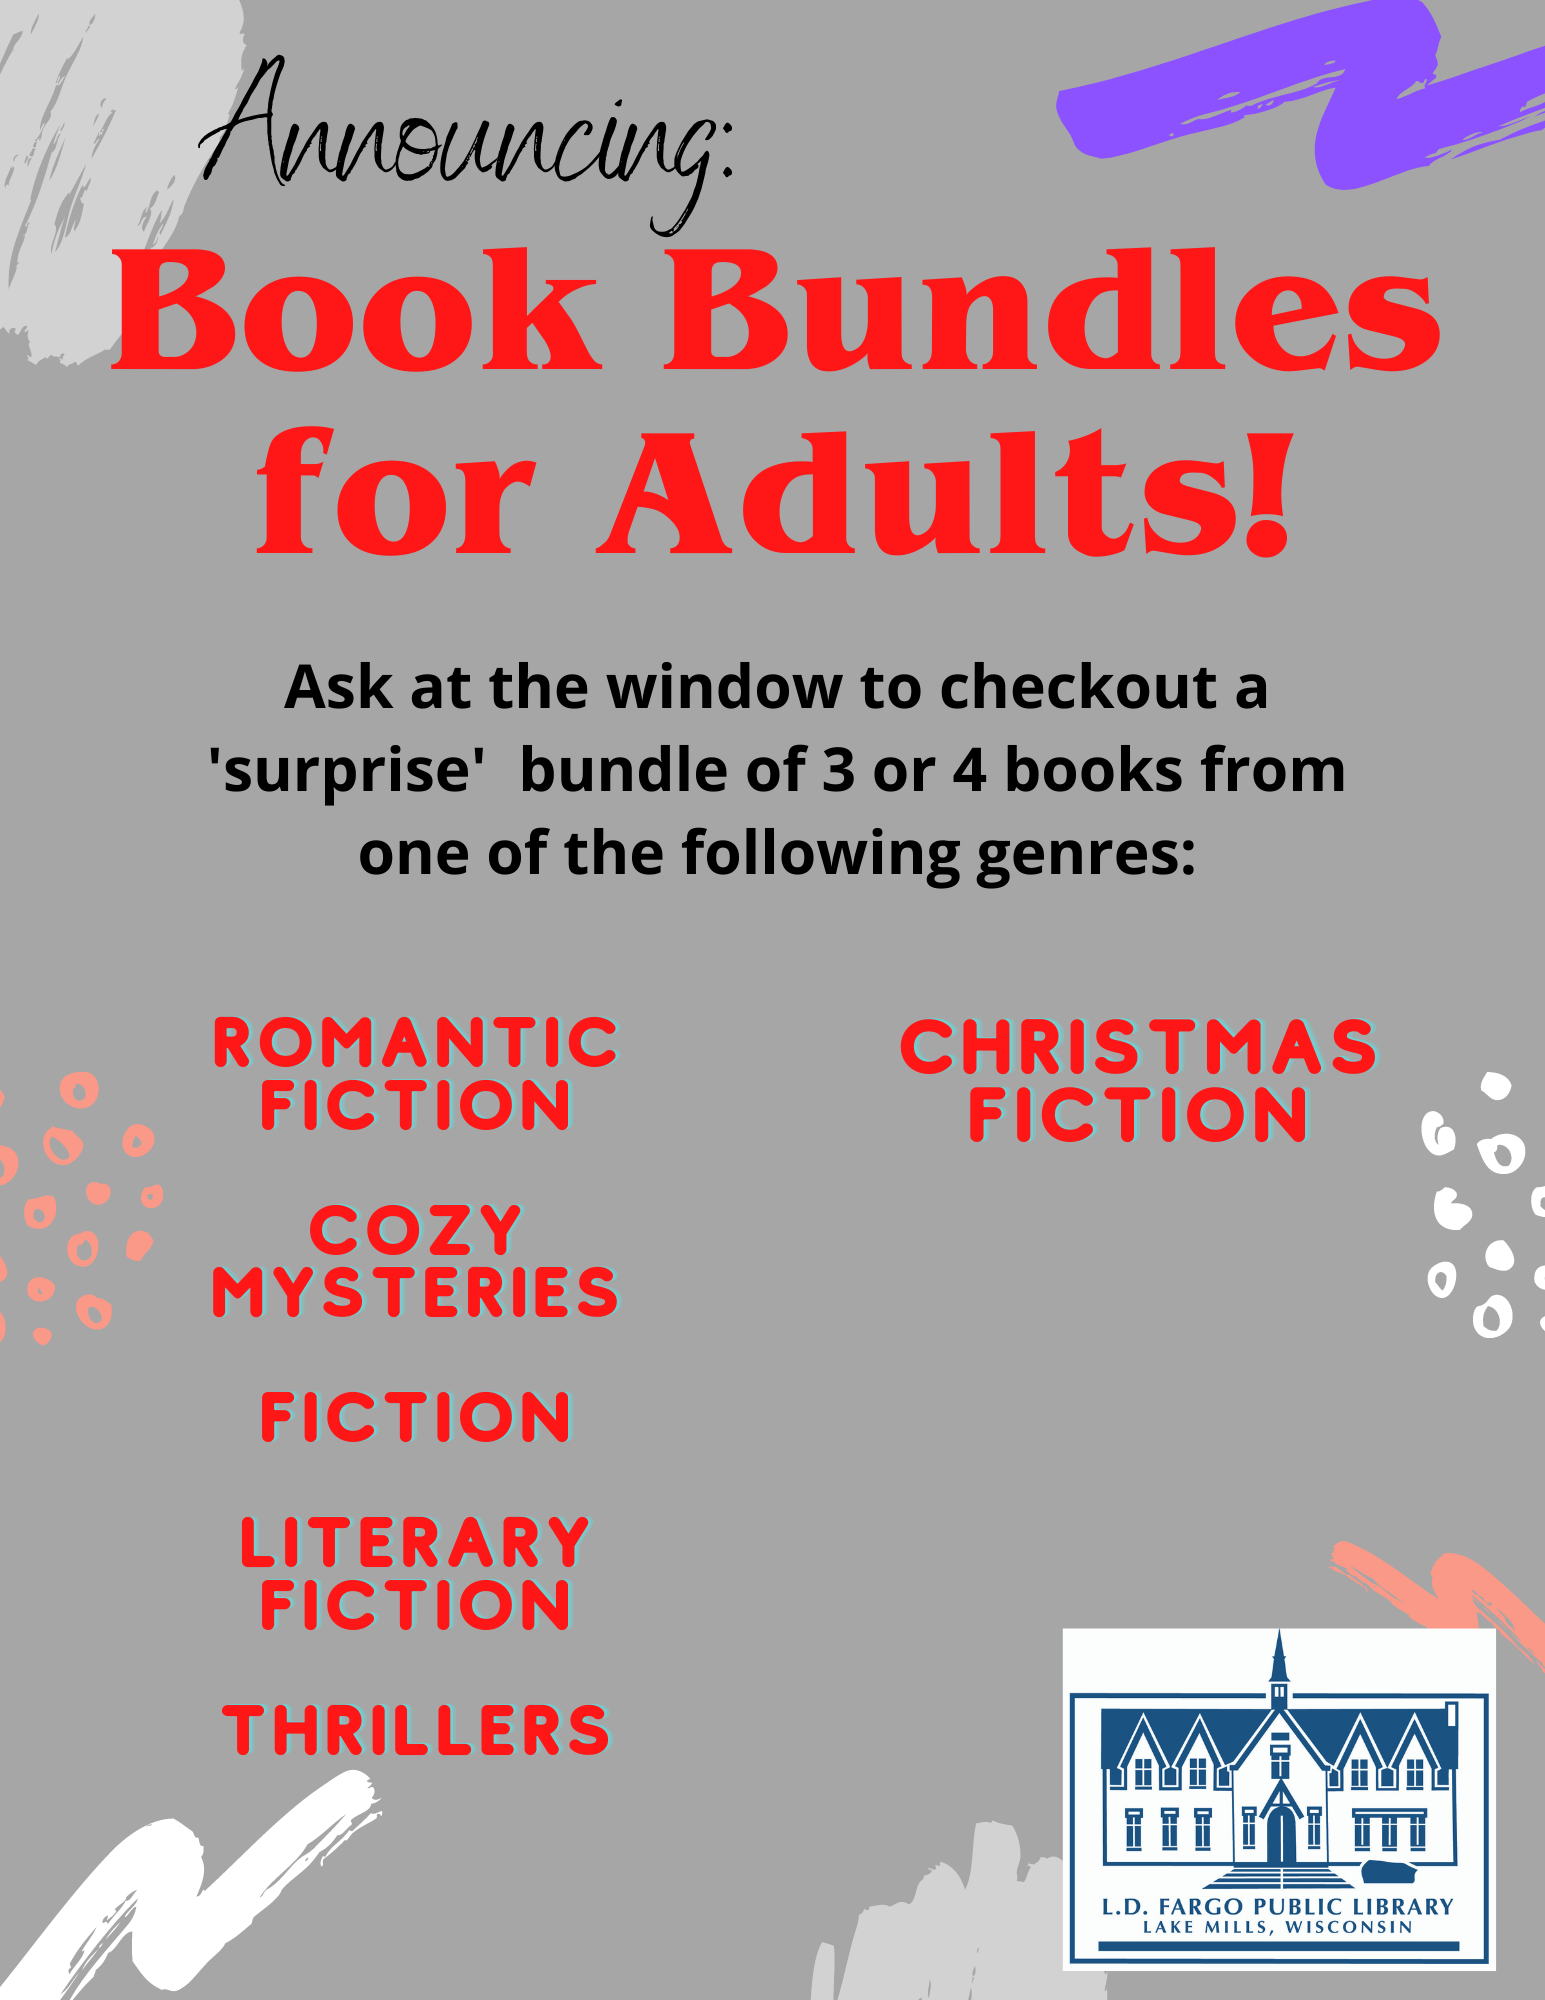 Announcing...Adult Book Bundles! Ask at the window to checkout a 'surprise' bundle of 3 or 4 books from one of the following genres:  Romantic fiction  Cozy mysteries  Fiction  Literary fiction  Thrillers  Christmas Fiction